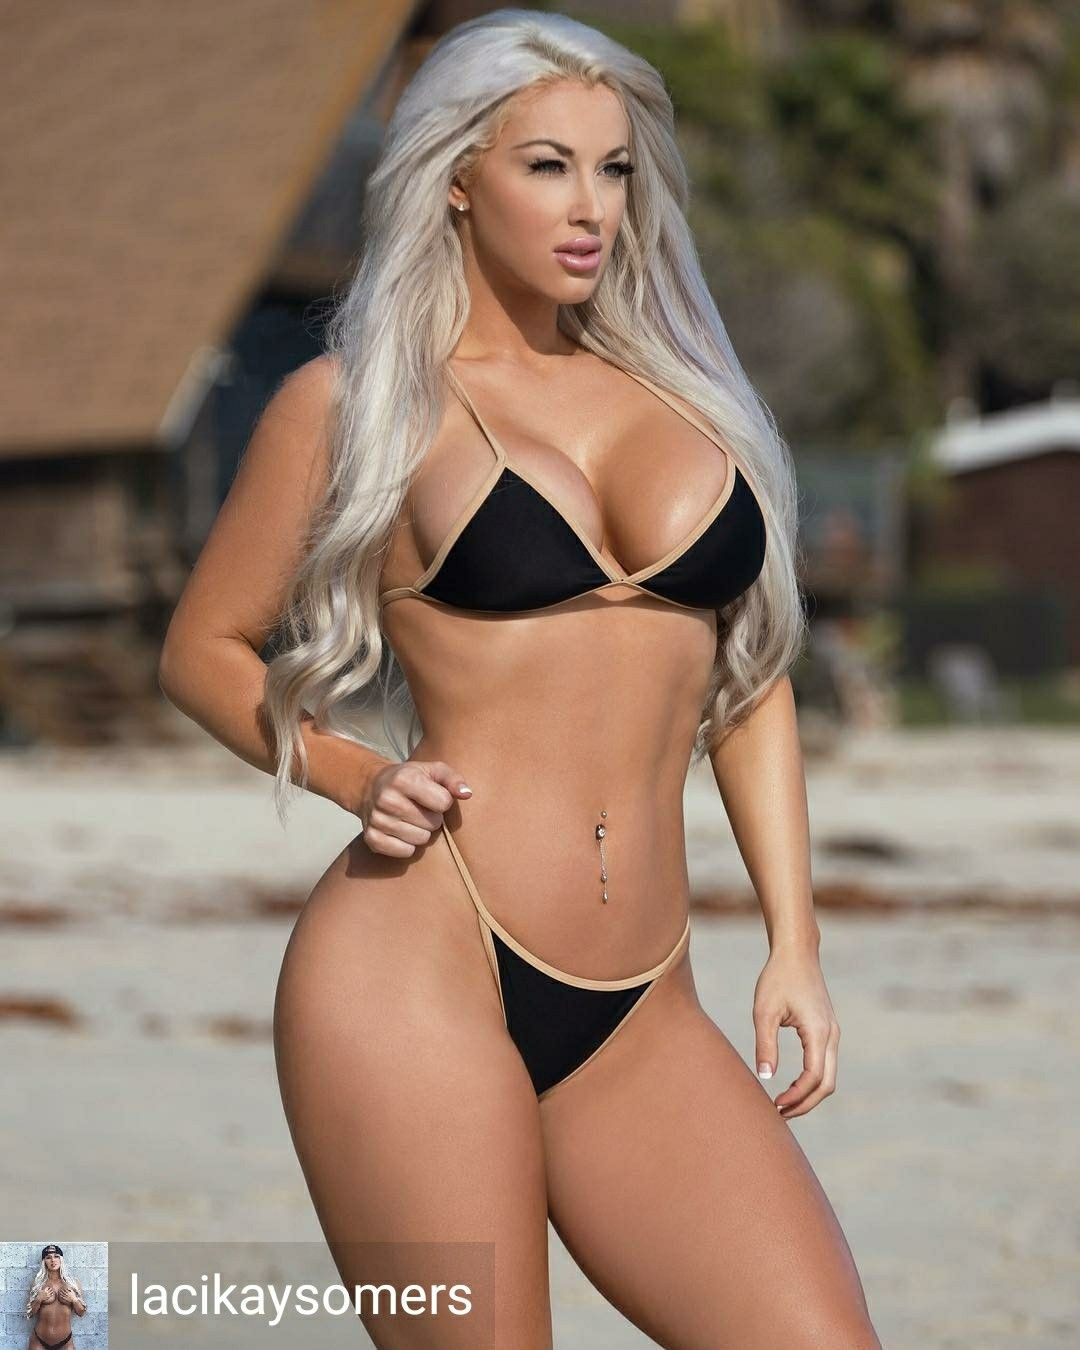 Celebrites Laci Kay Somers nudes (44 photos), Tits, Is a cute, Selfie, cameltoe 2017